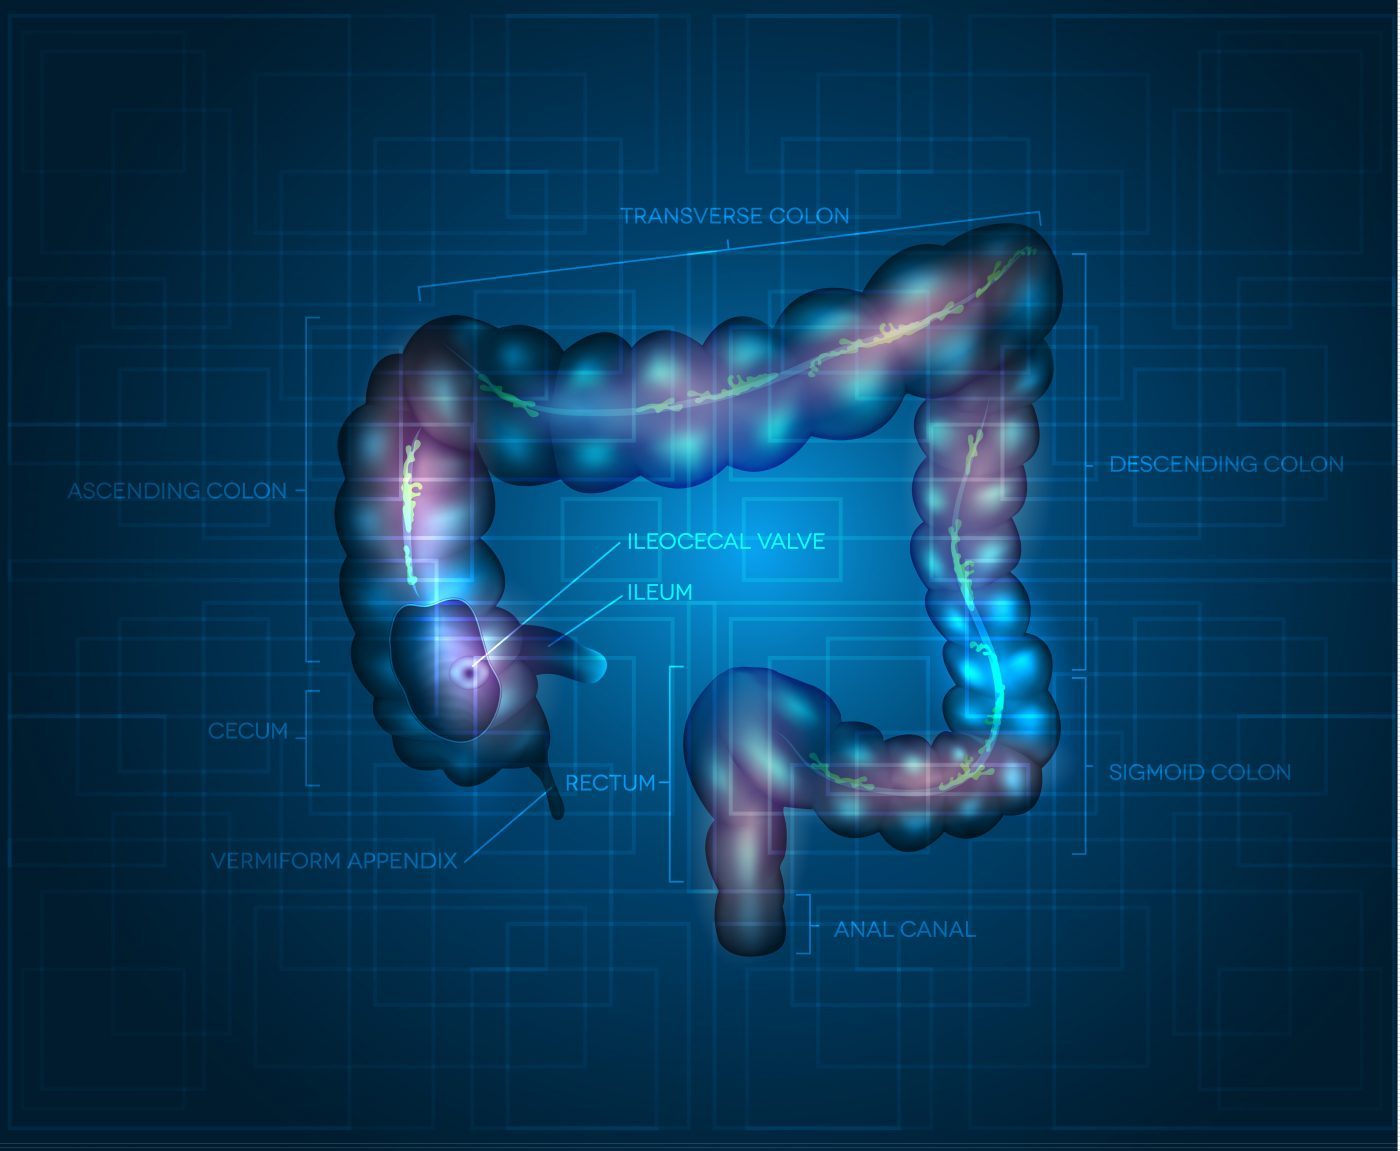 Clinical Practice Guidelines on Molecular Marker Tests for Colorectal Cancer Open to Public Comment